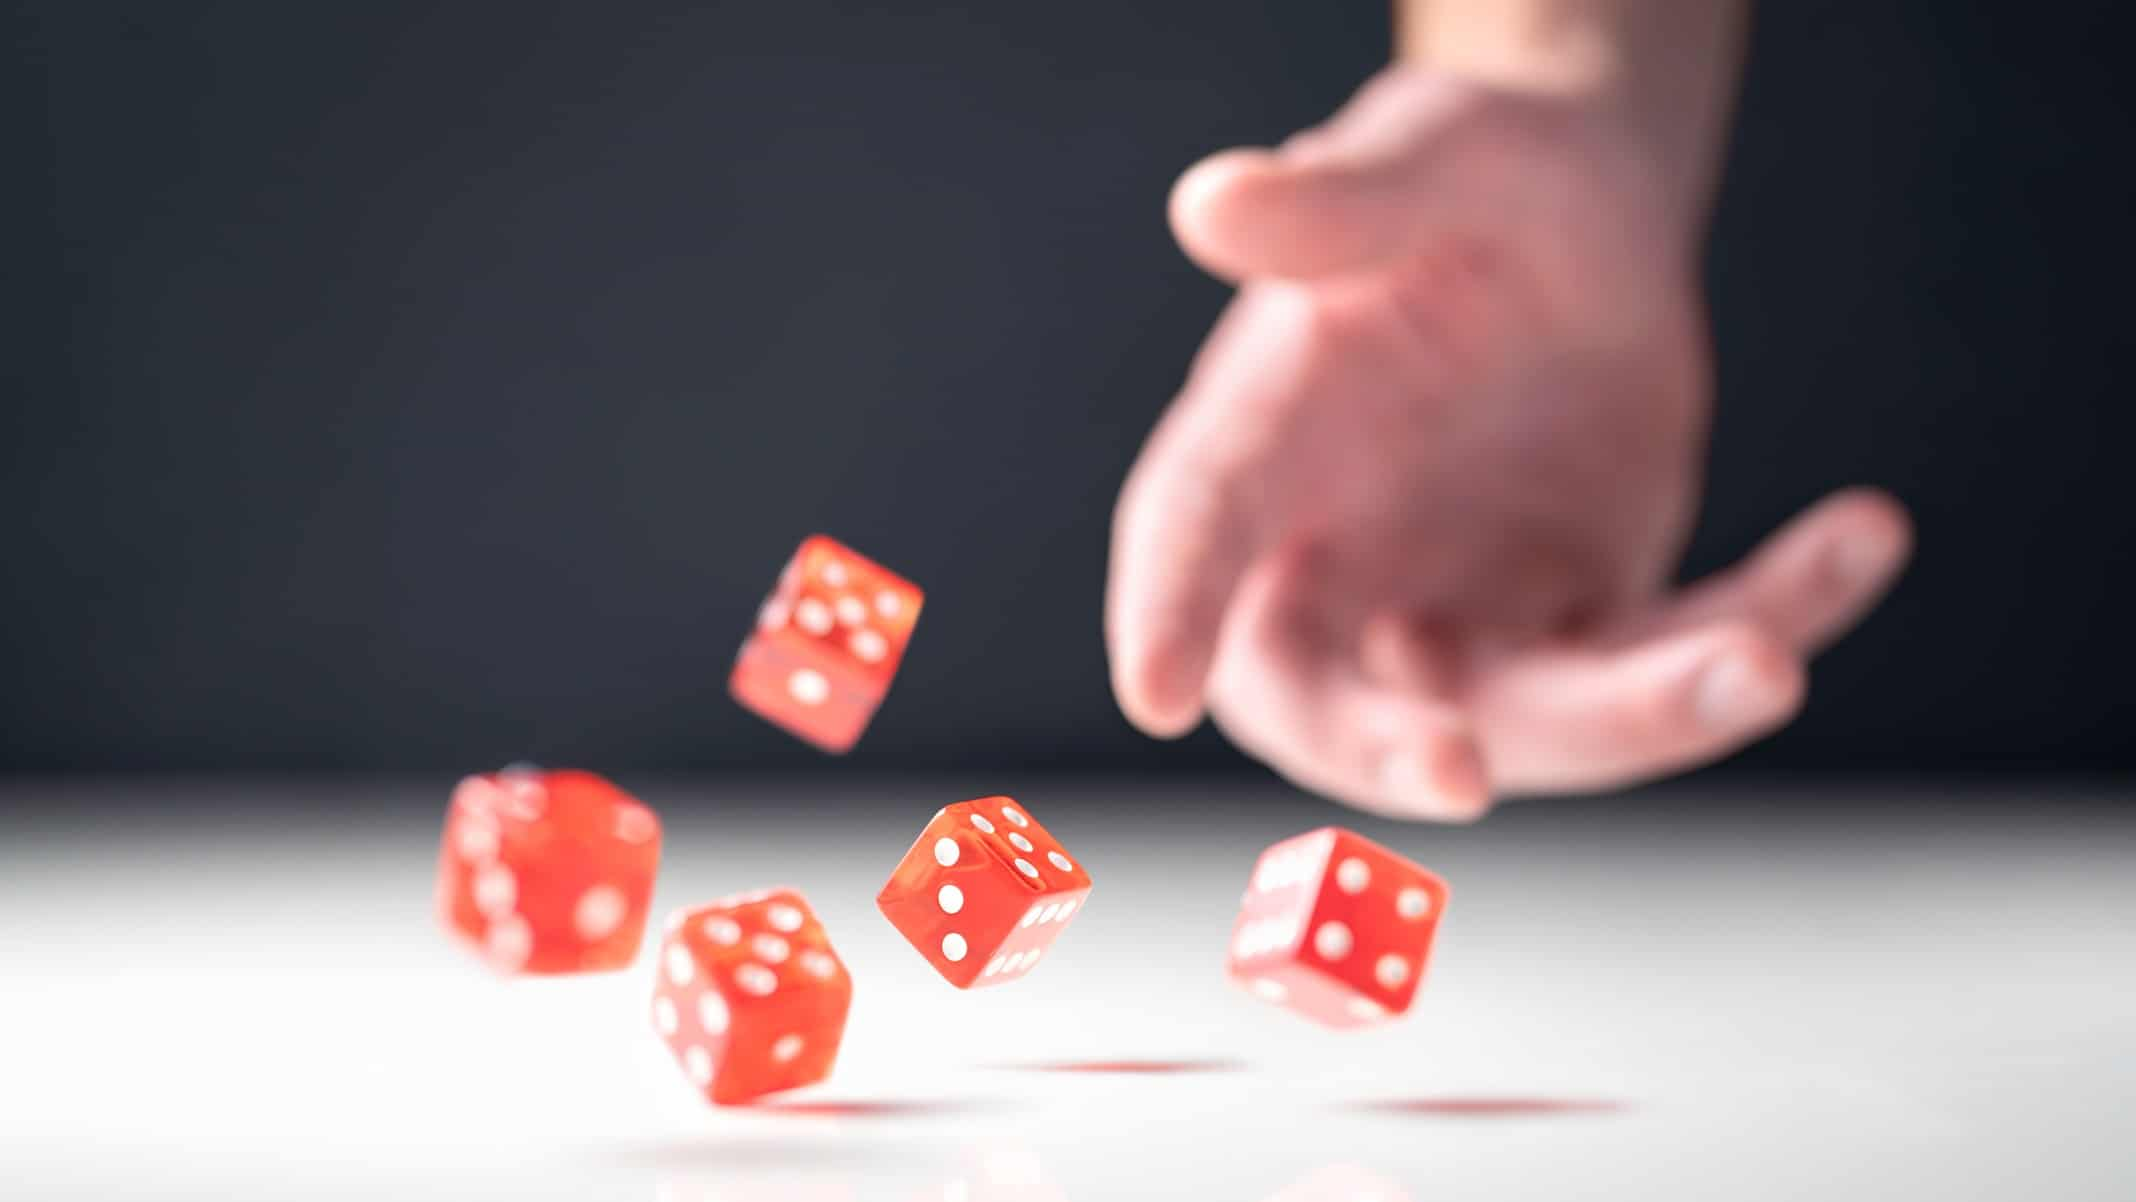 Hand throwing four red dice